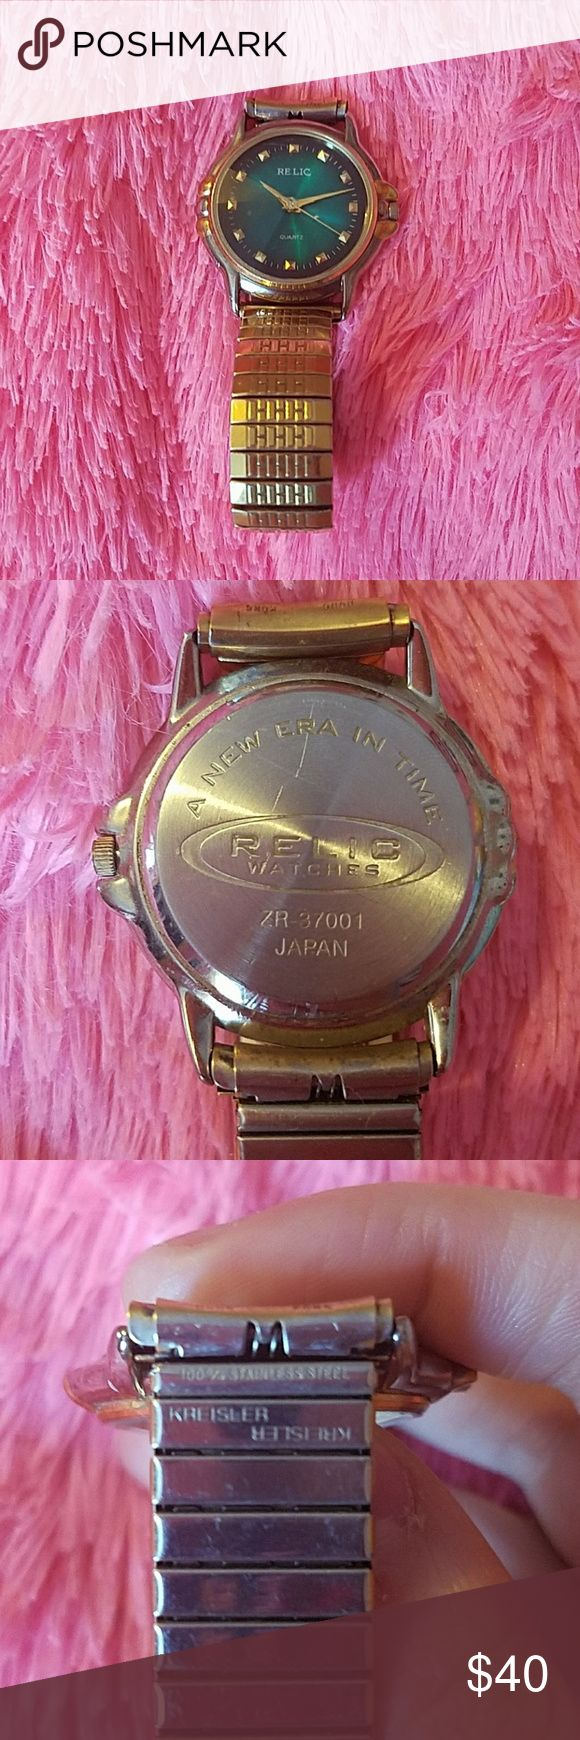 Relic watch Old relic watch Gold colored 100% steel band Watch face is turquoise green quartz  Doesn't run but probably just needs new battery. Can't find price online to go by so make a reasonable offer Relic Accessories Watches